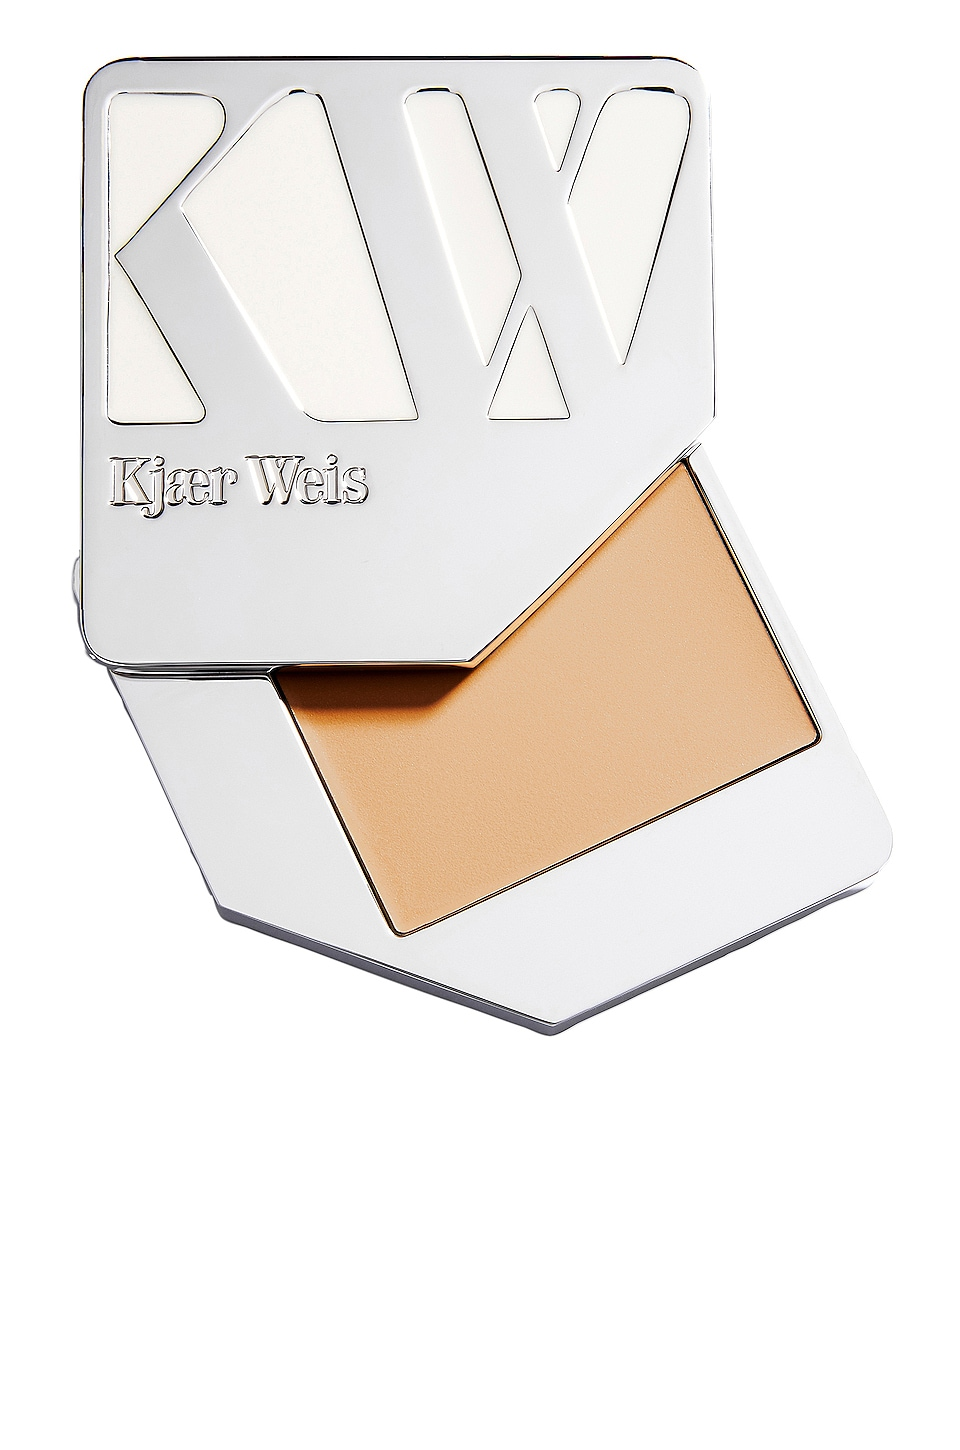 Kjaer Weis Cream Foundation in Silken